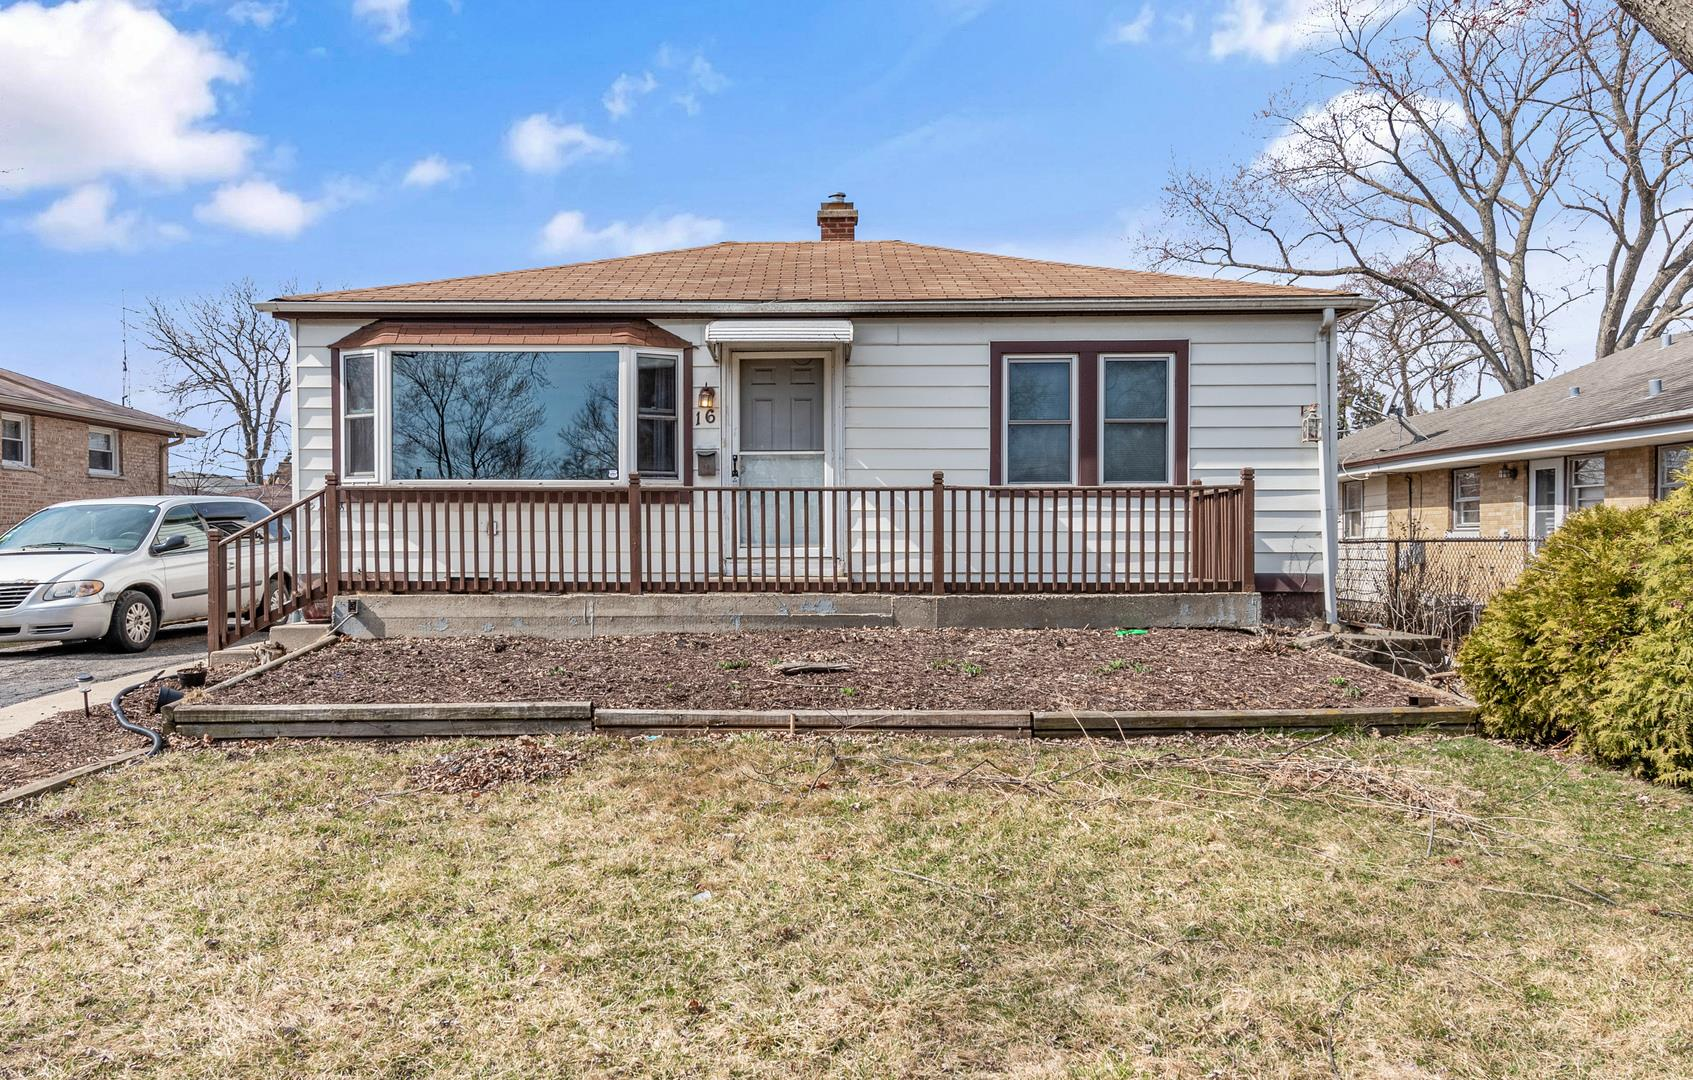 16 S Wisconsin Avenue, Addison, IL 60101 - #: 11014519